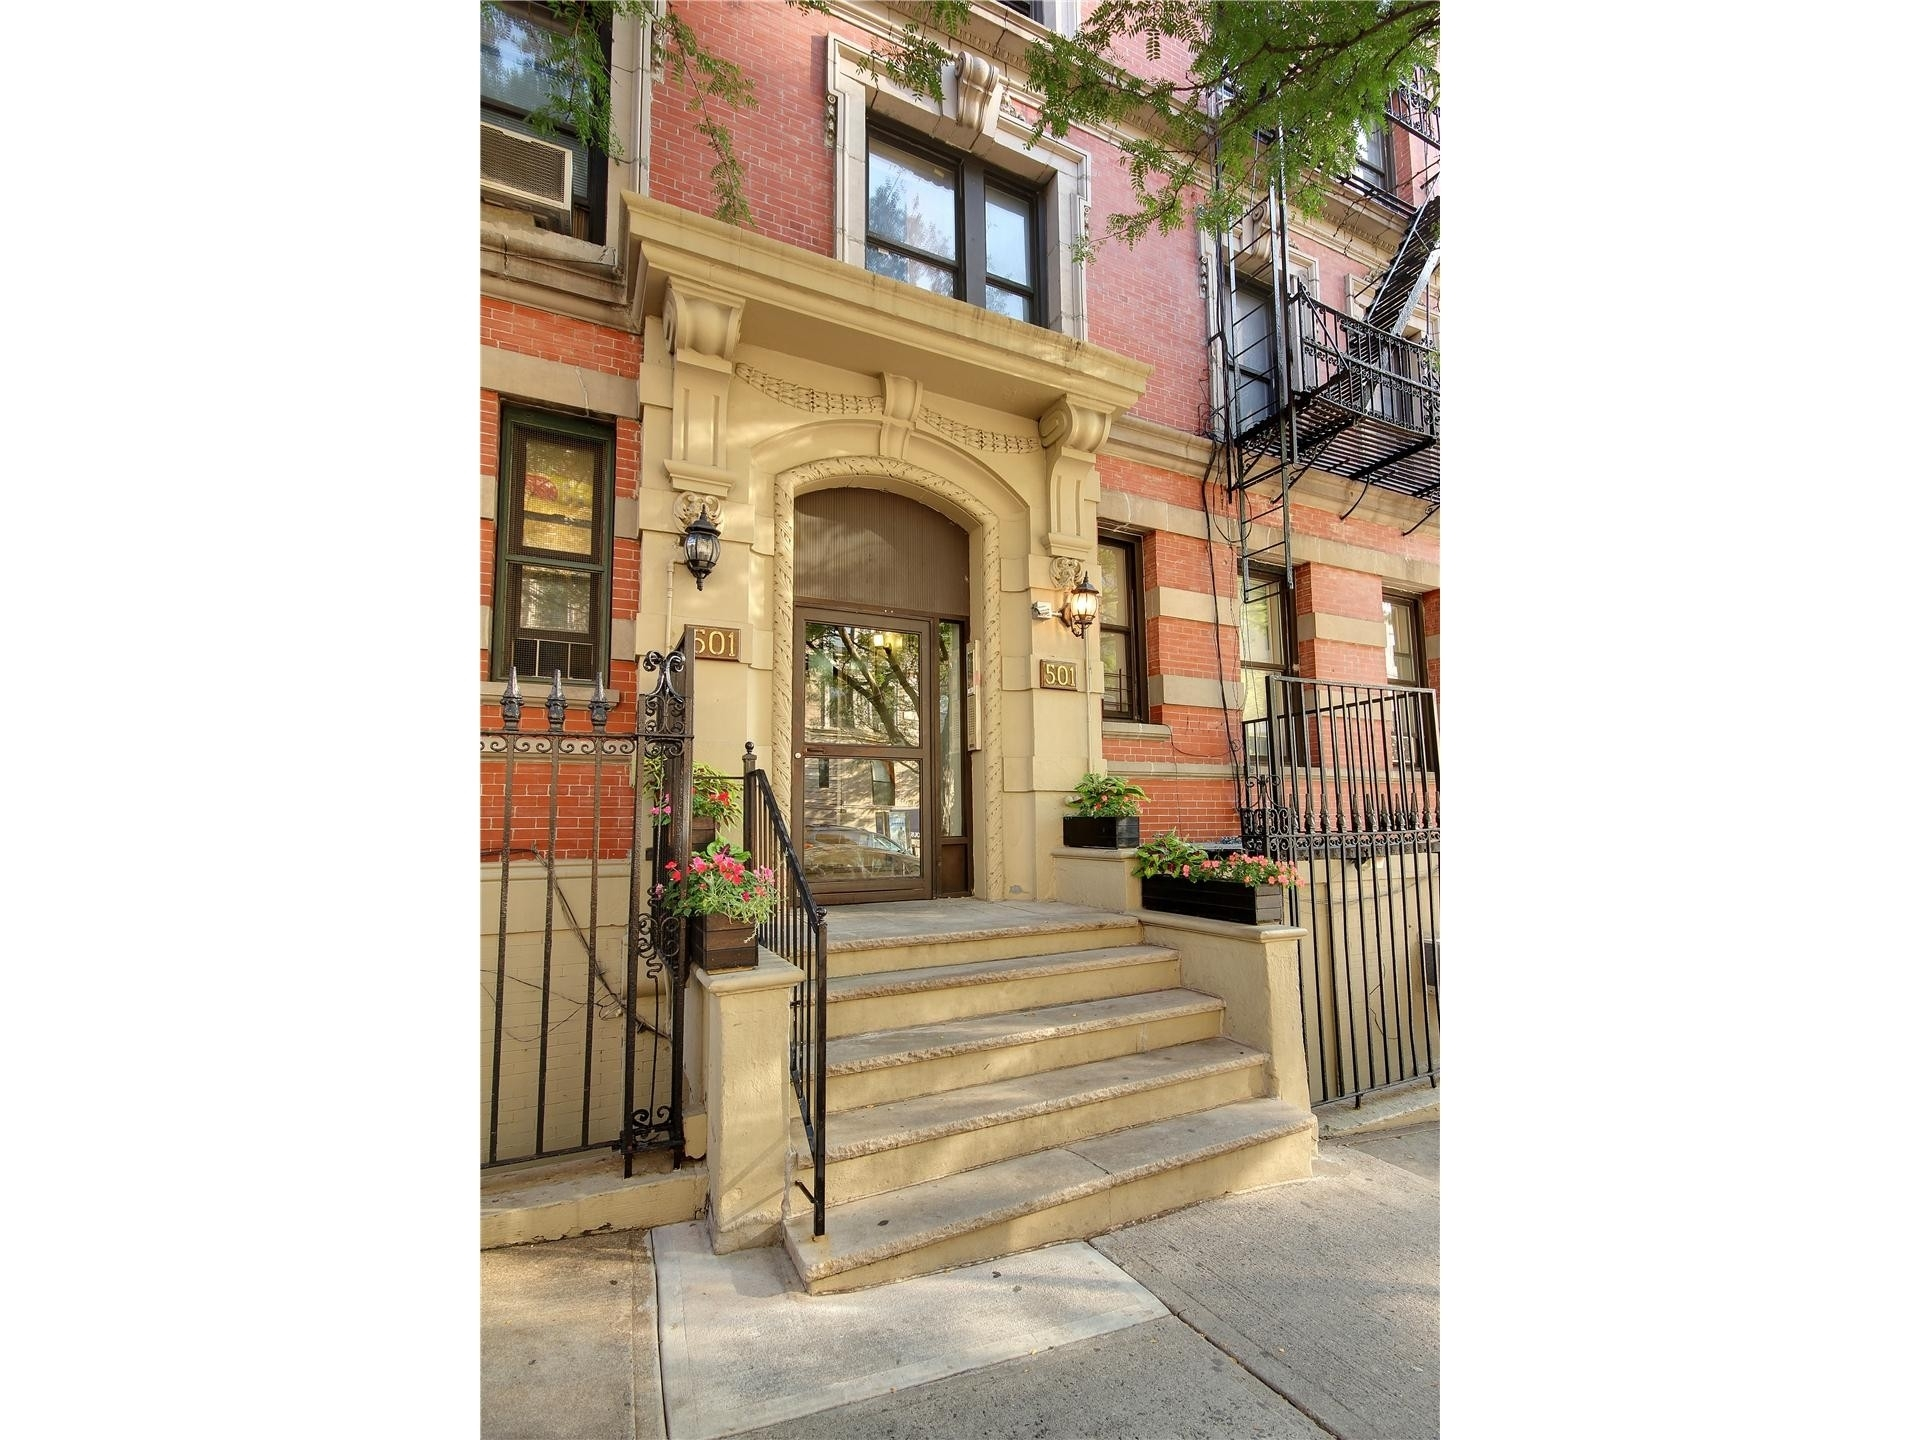 13. Co-op Properties for Sale at 501 West 122nd St, A1 Morningside Heights, New York, NY 10027